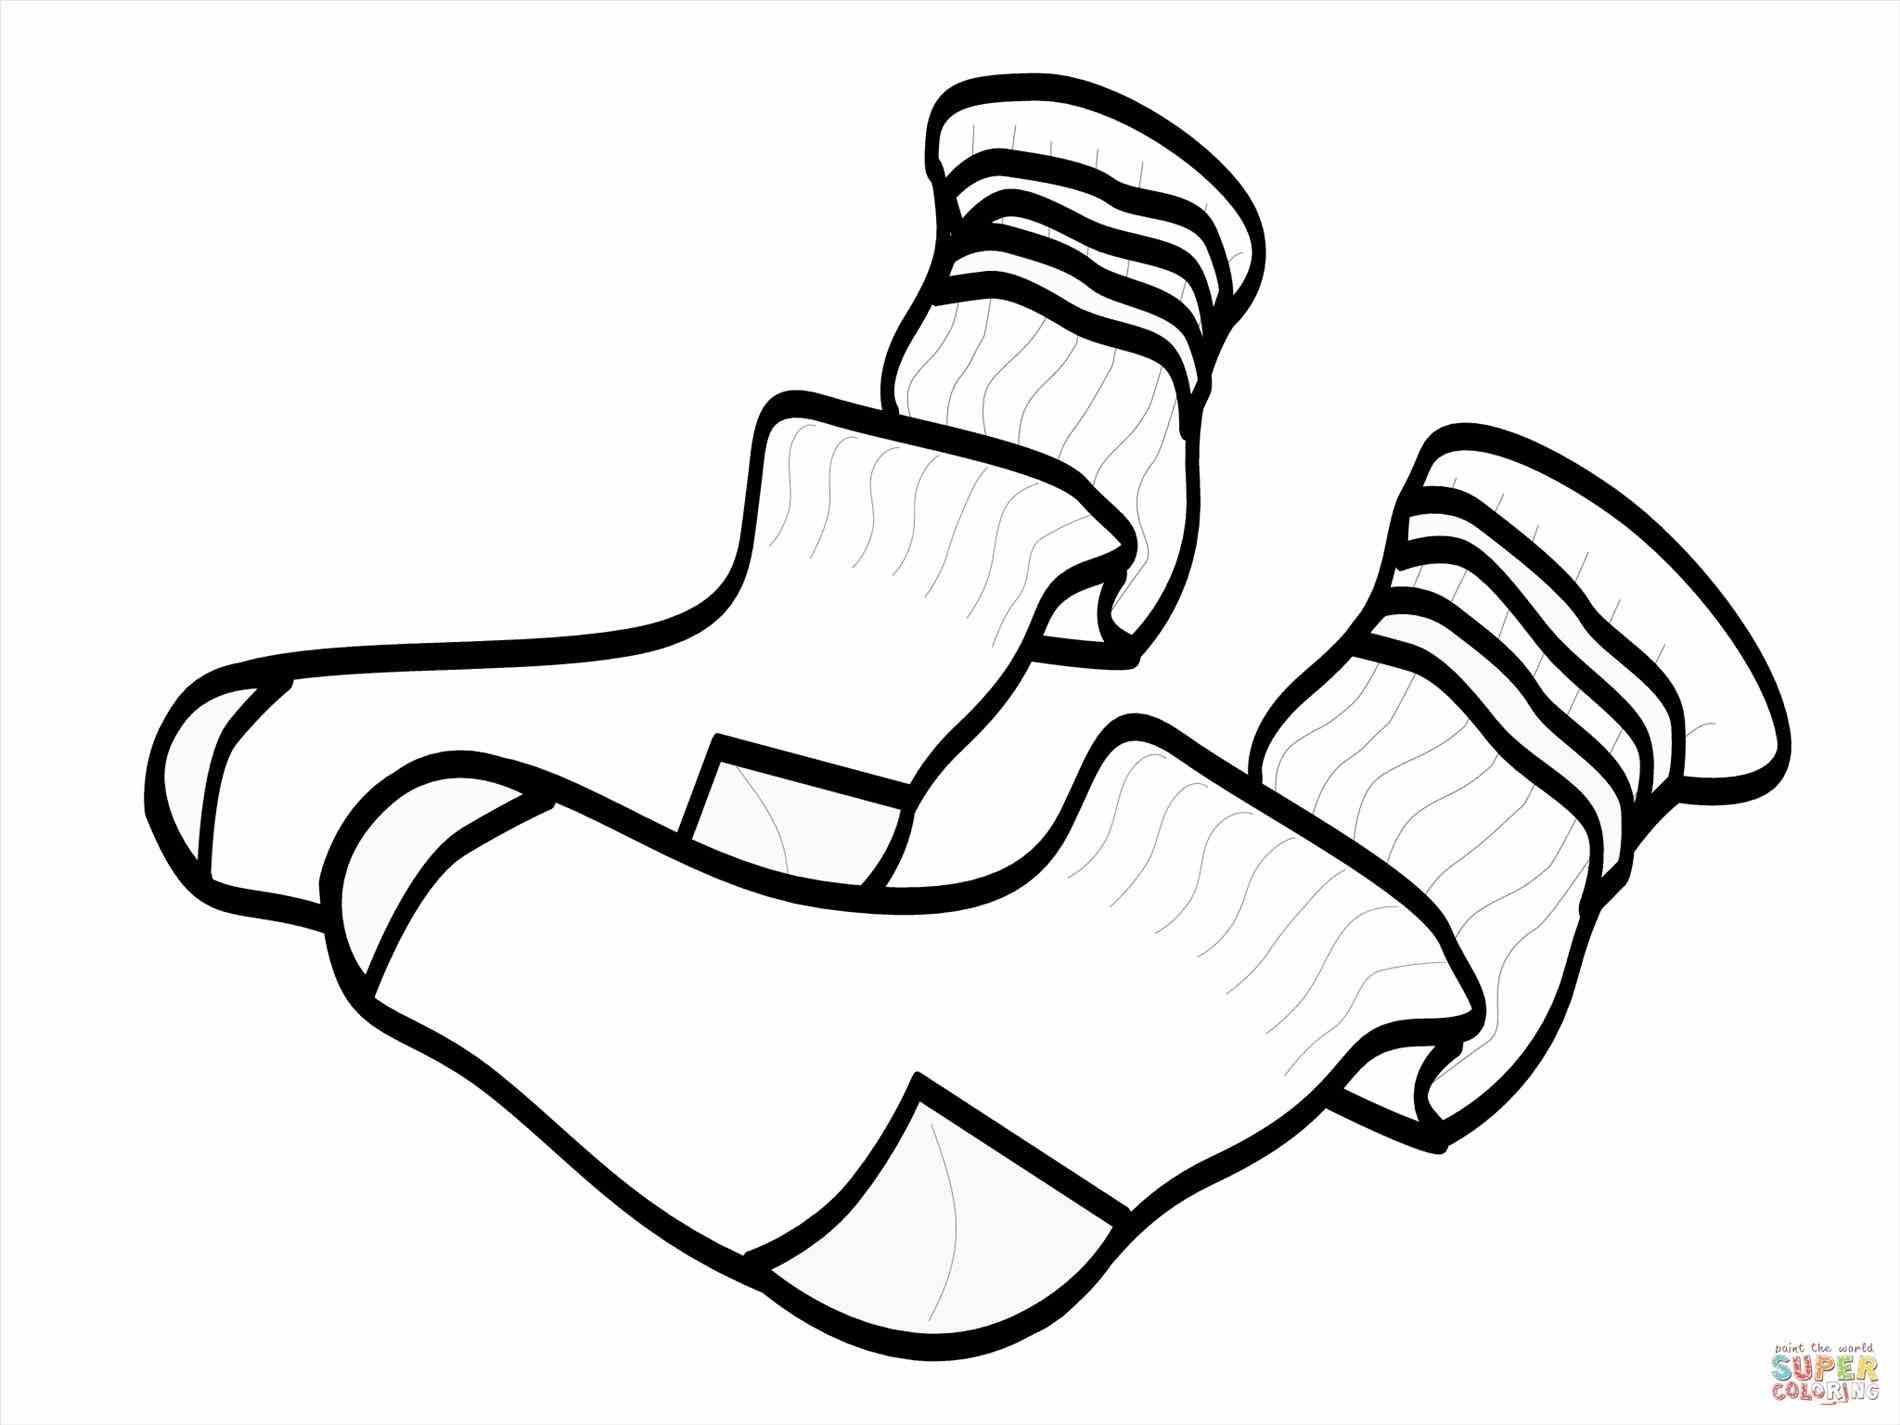 Dirty socks clipart 4 » Clipart Station.